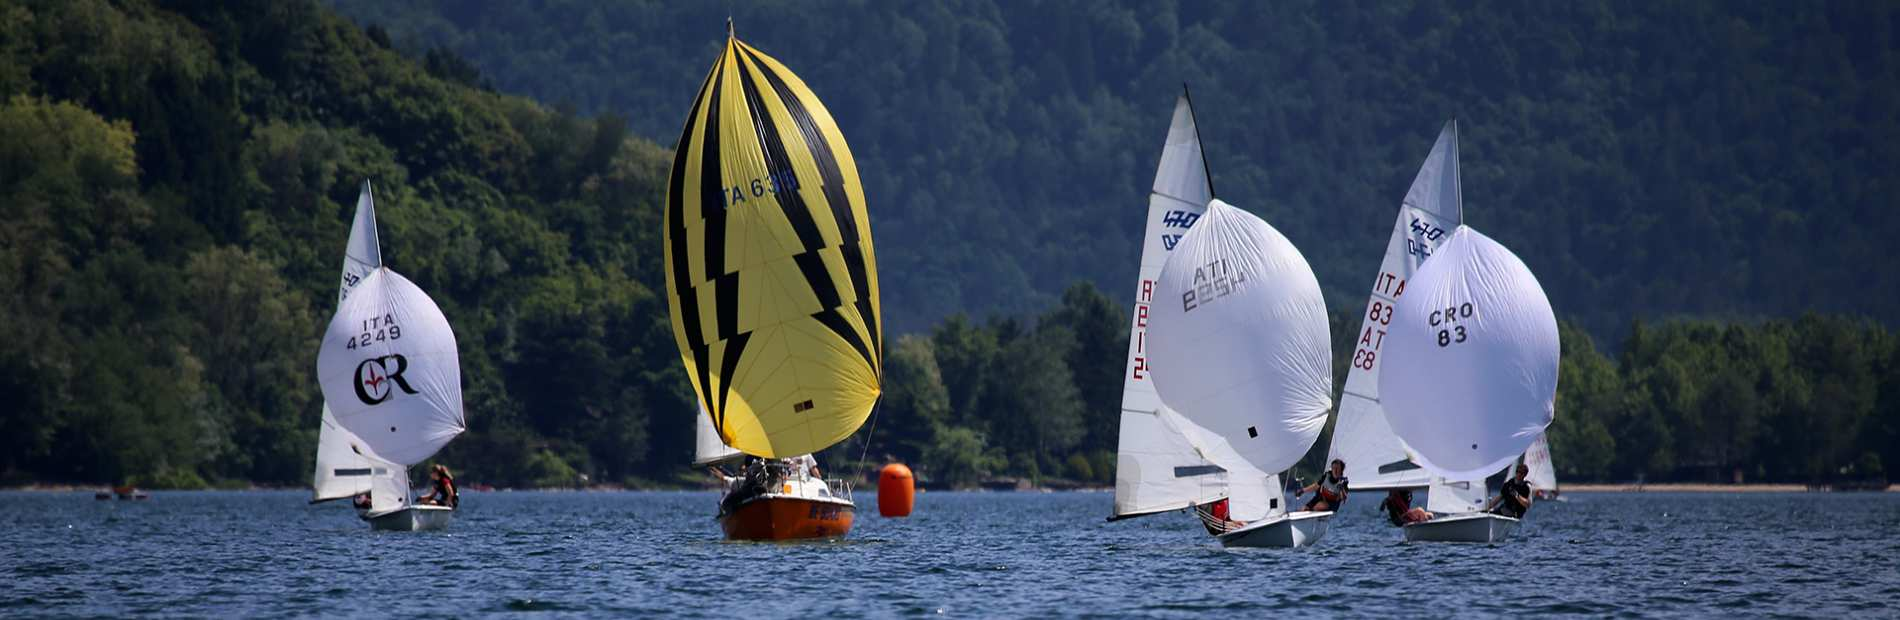 Sailing Association of Trentino